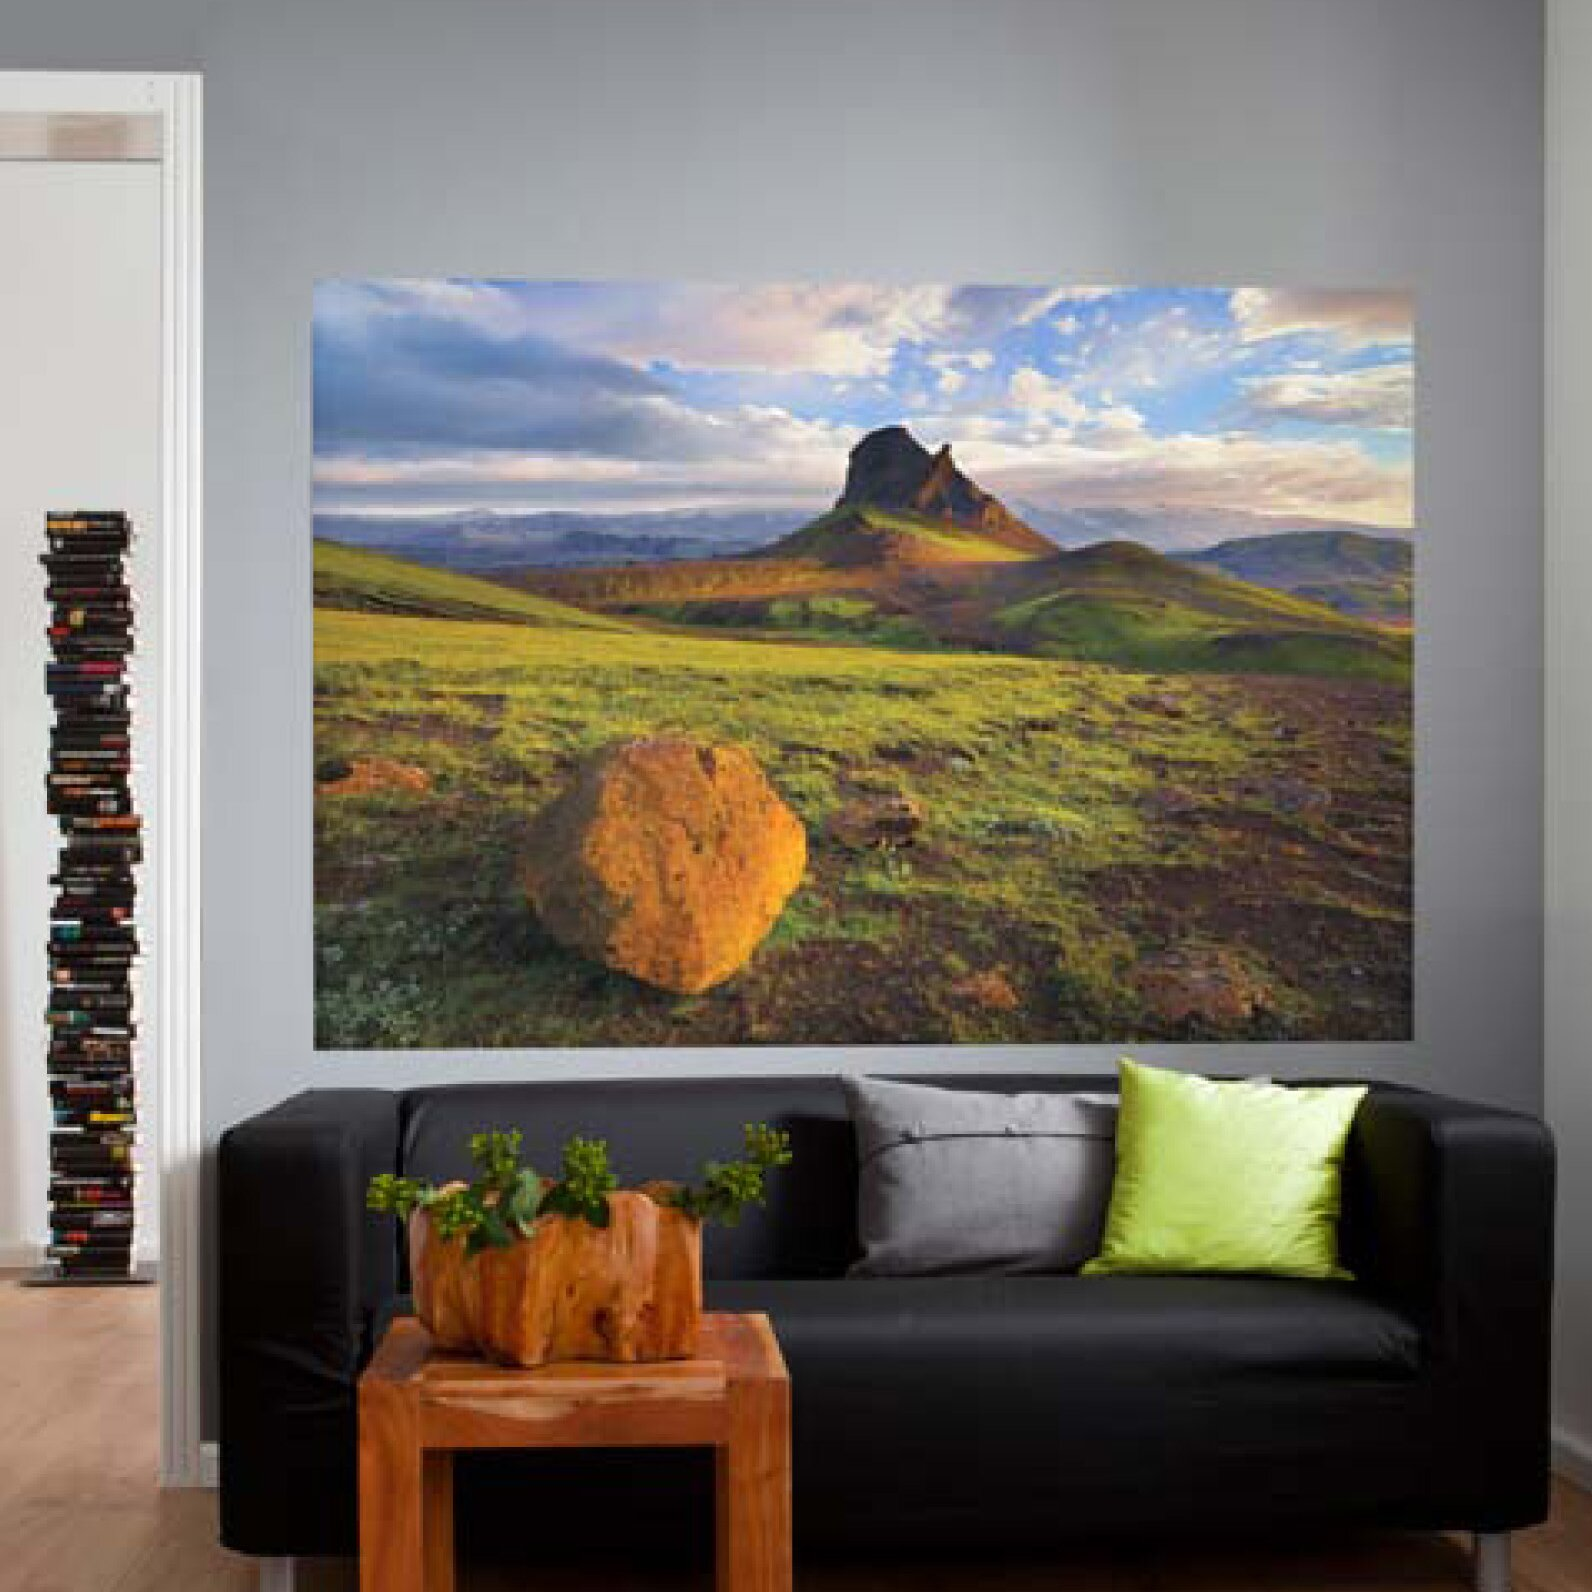 Brewster home fashions komar iceland wall mural reviews for Brewster wall mural